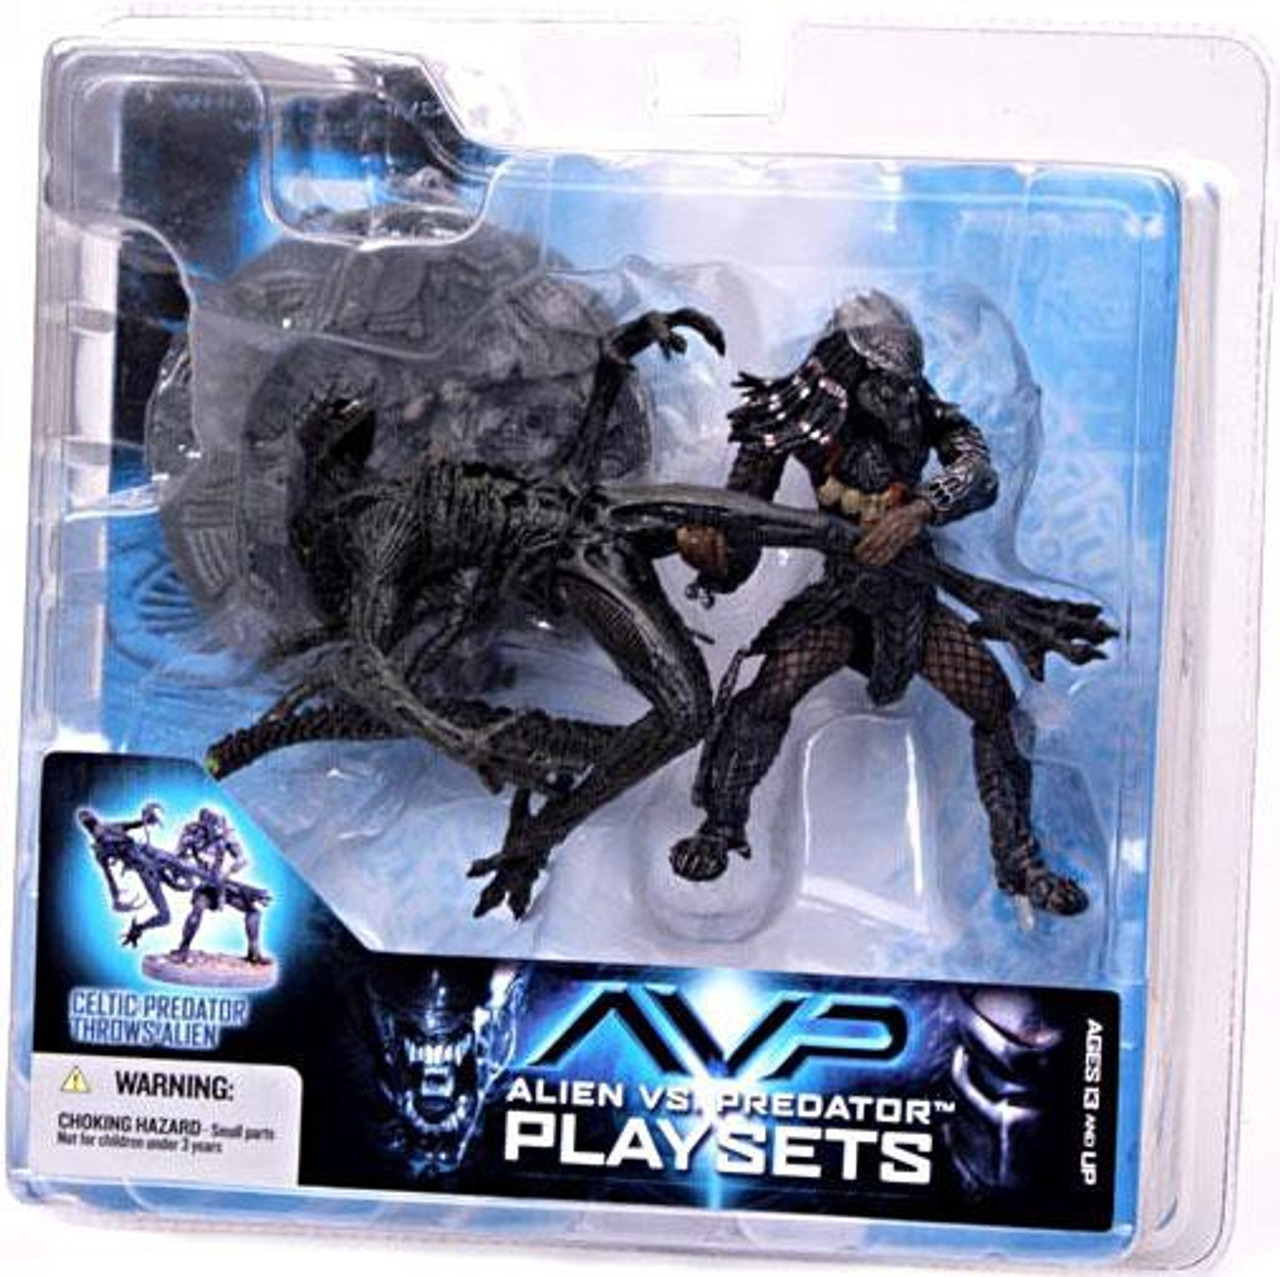 Alien vs preditor toys